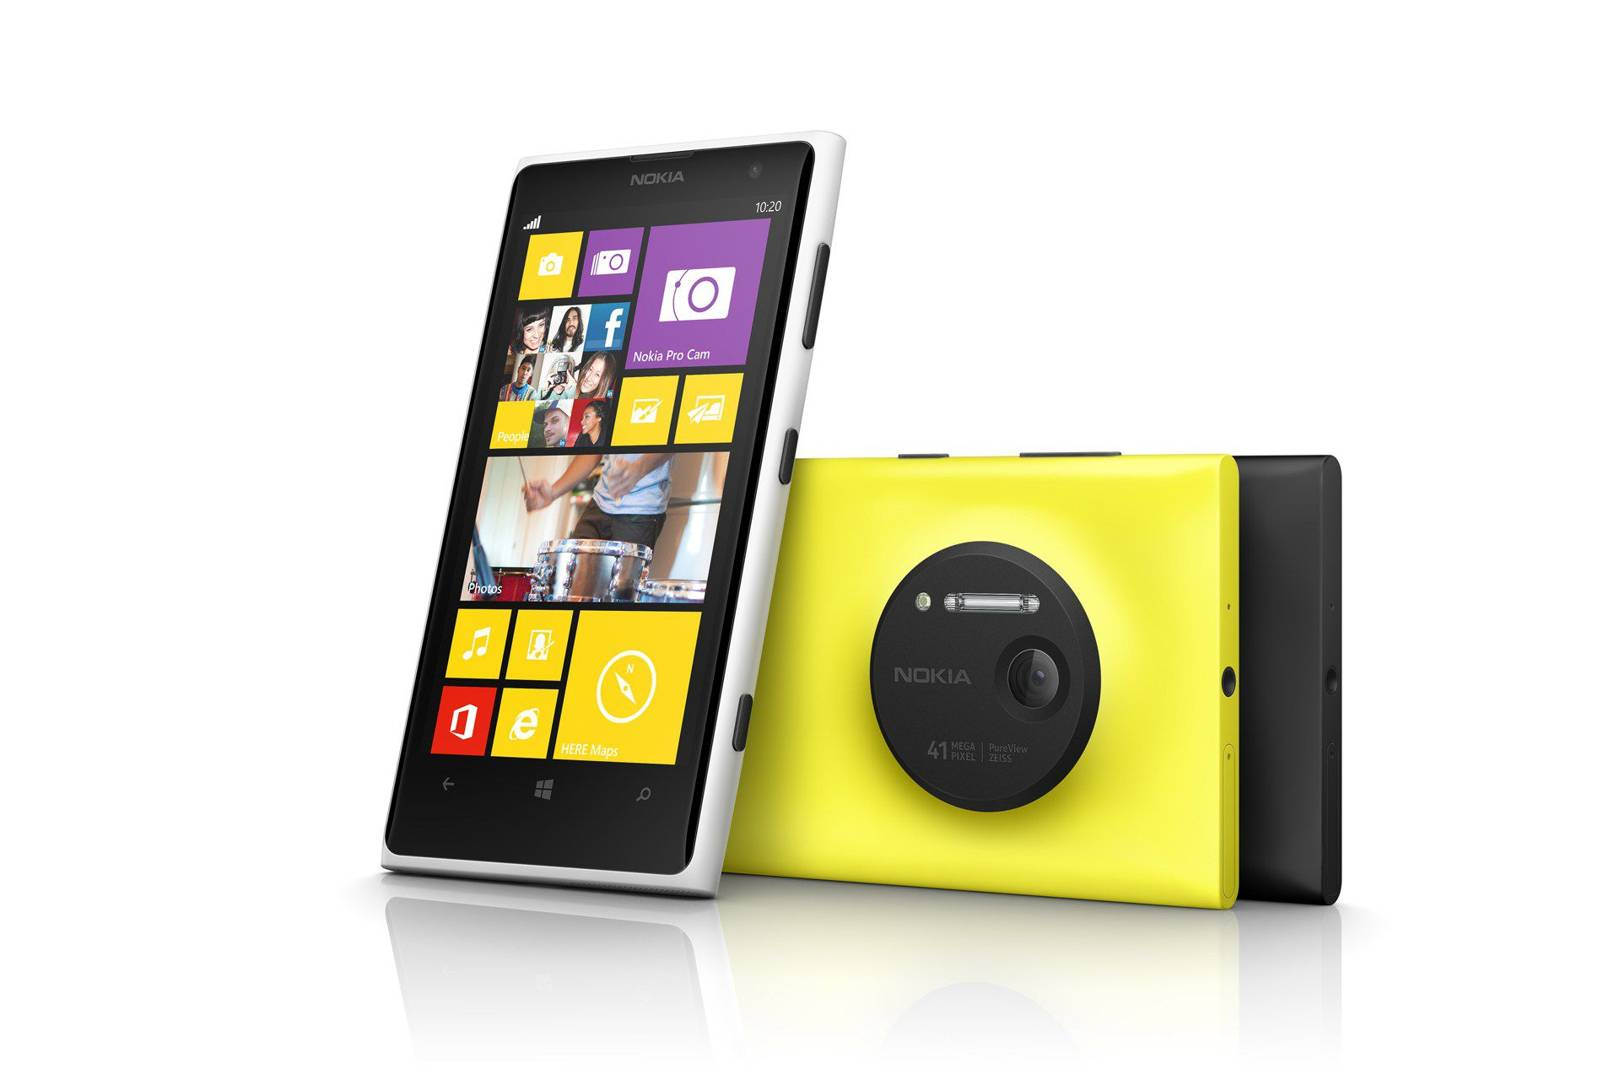 Nokia lumia 1020 review big camera big price big win - Nokia Lumia 1020 Review Uk Version Specs Features Best Price And Camera Quality Wired Uk